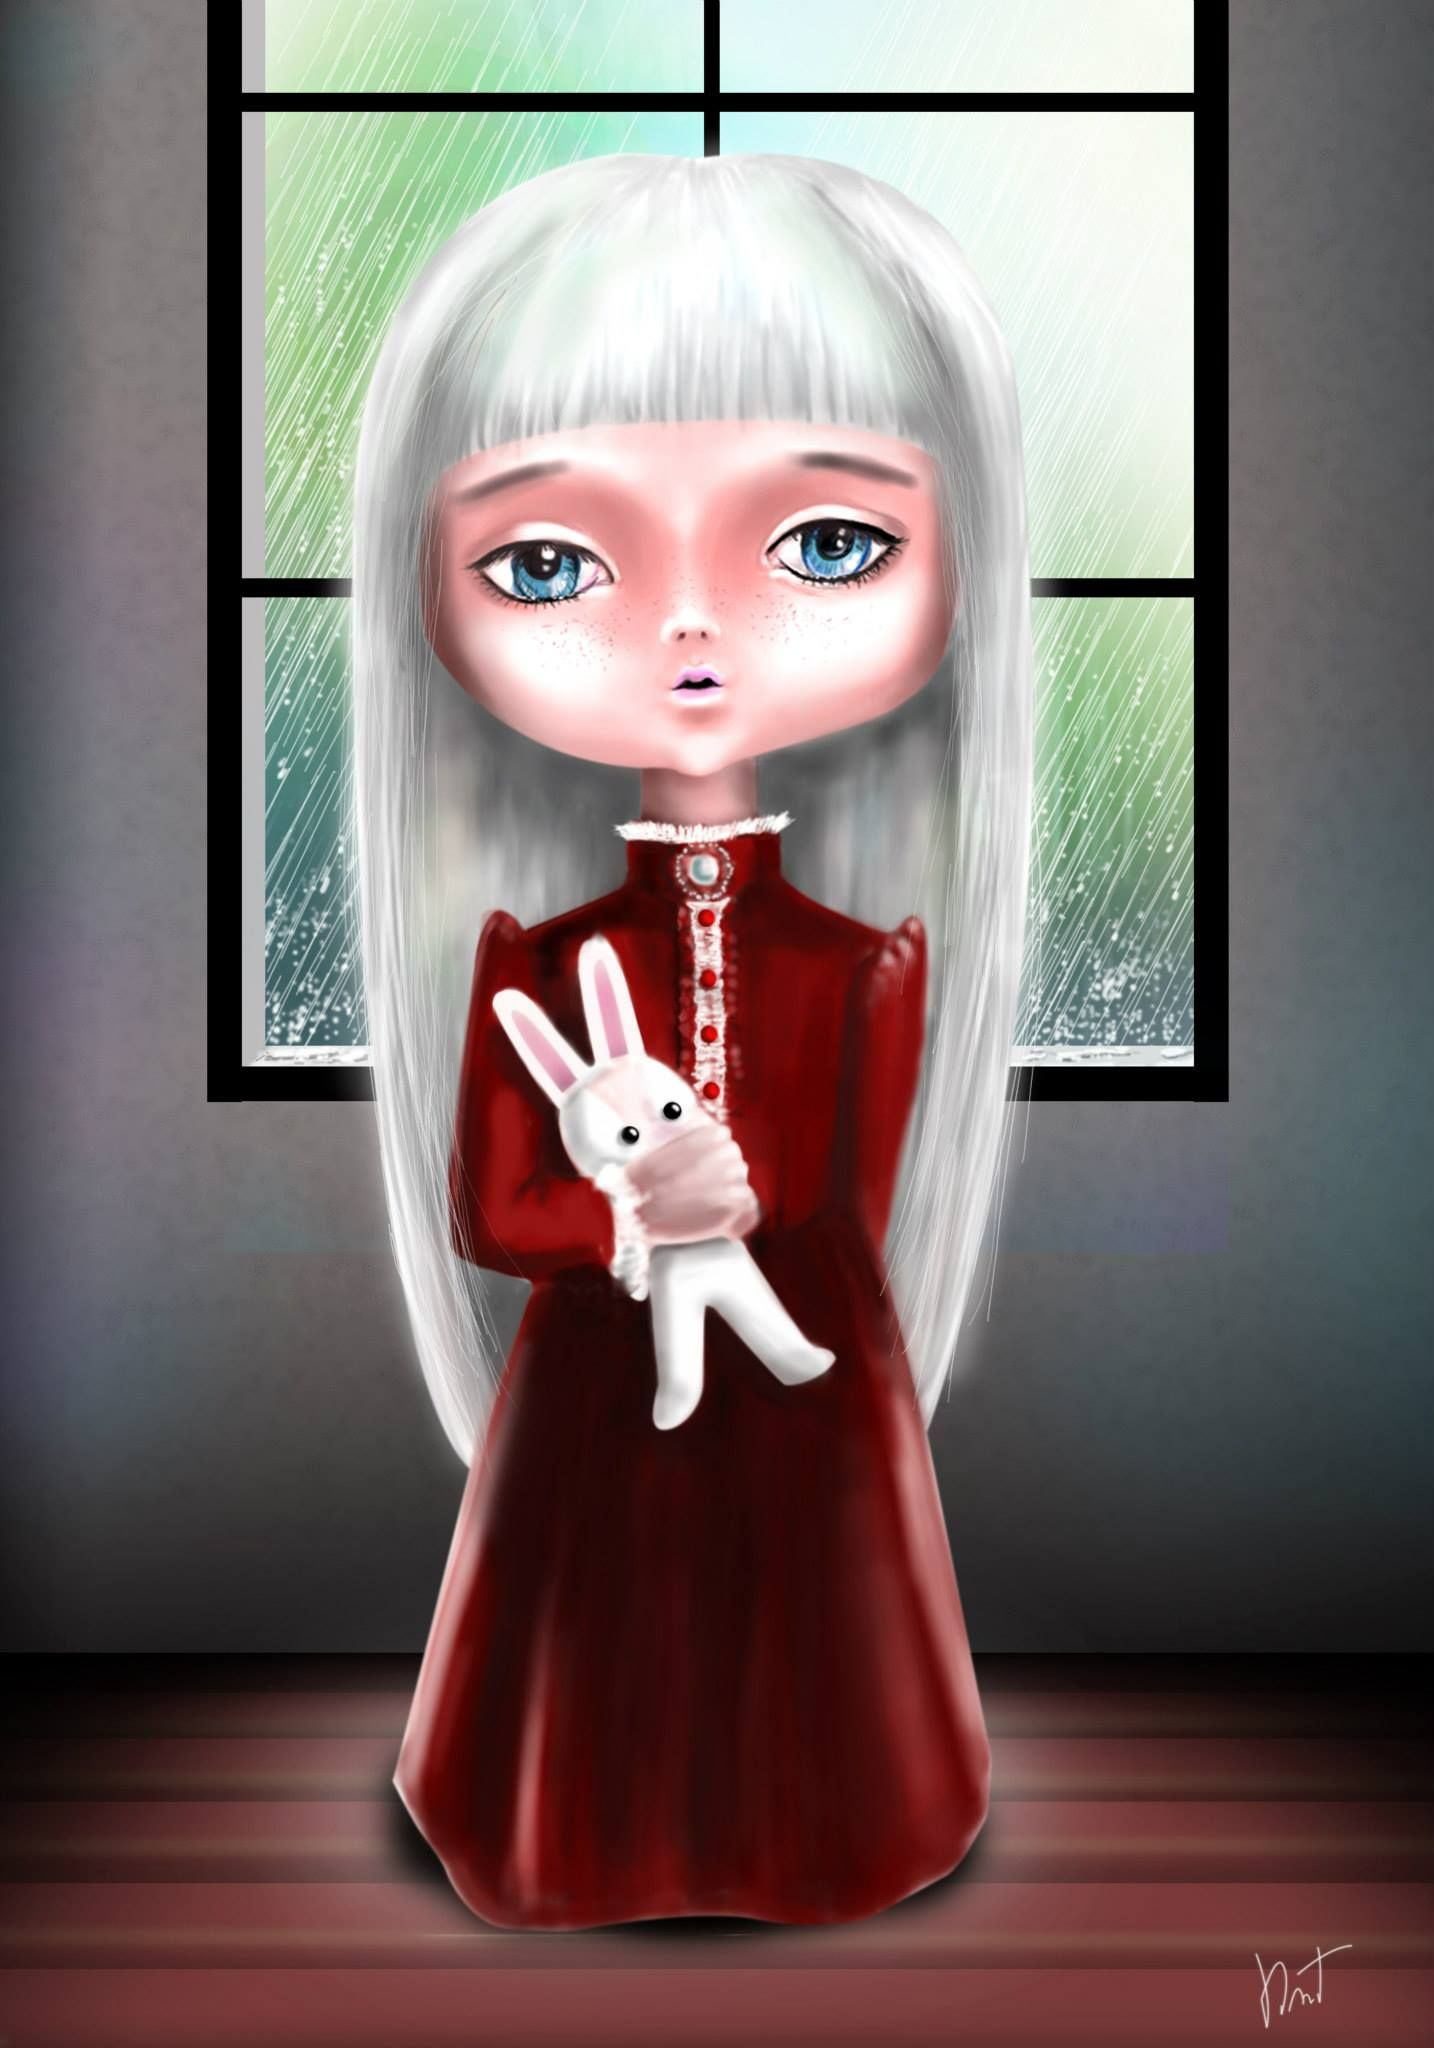 My digital paint ... What's her hide in the raining day (Namkaow & Bunnybun)